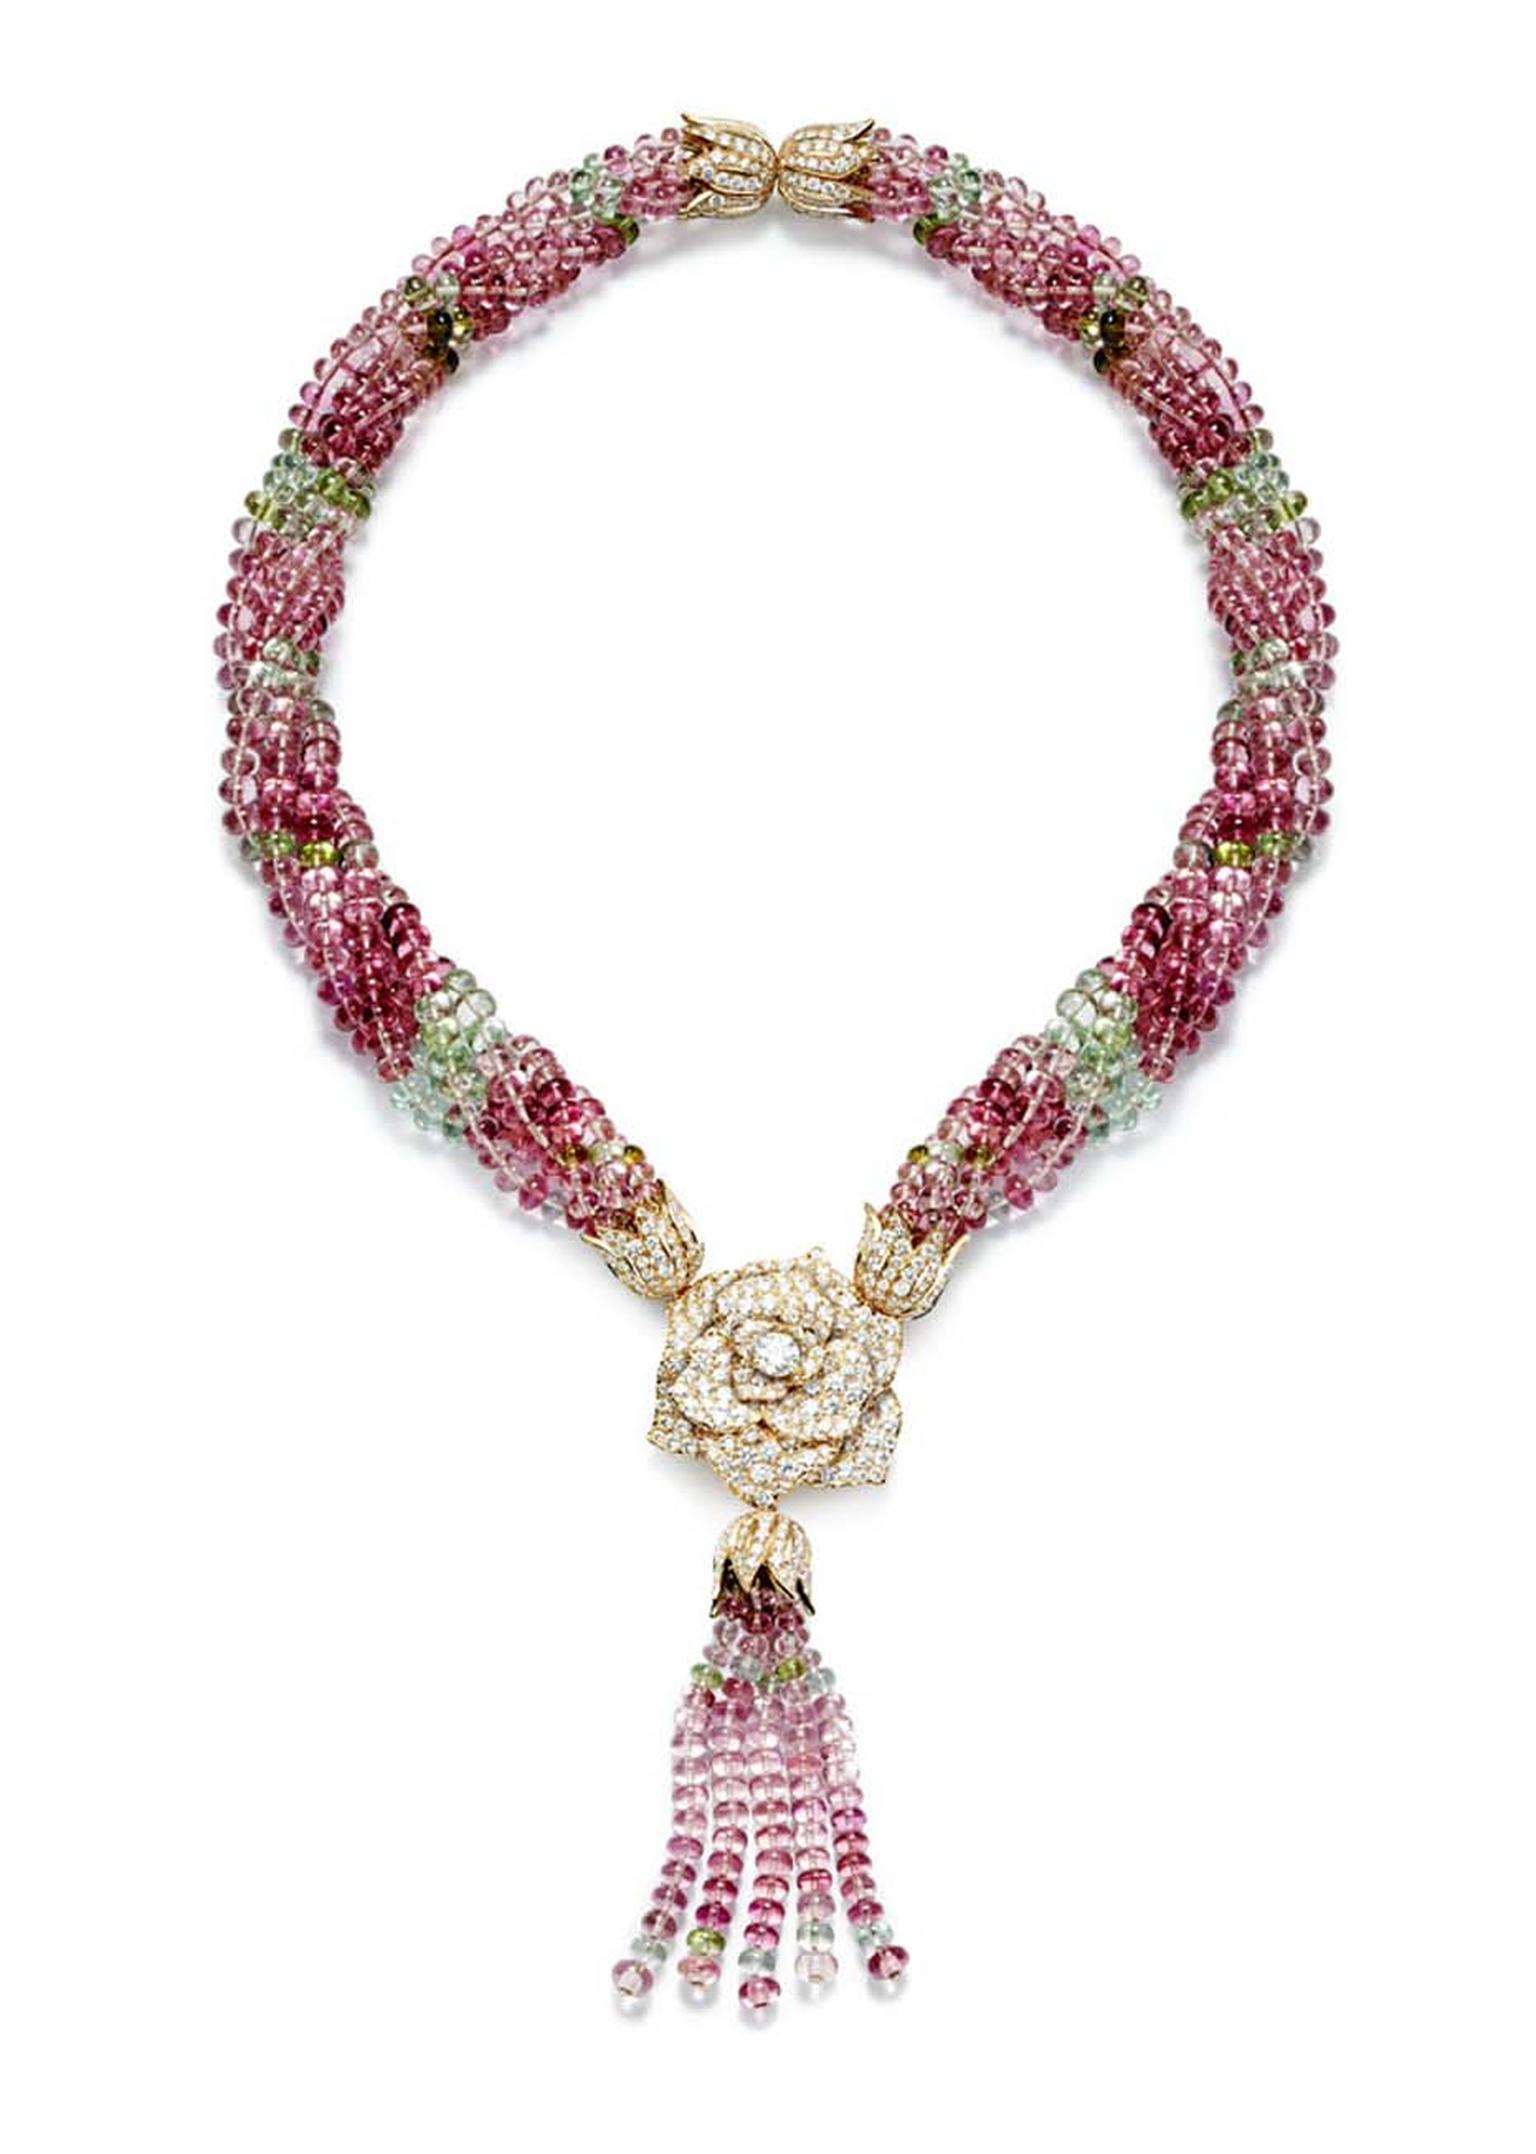 Piaget Rose Passion Tassle Necklace with pink sapphire tassels hanging from an iconic Piaget diamond and gold rose